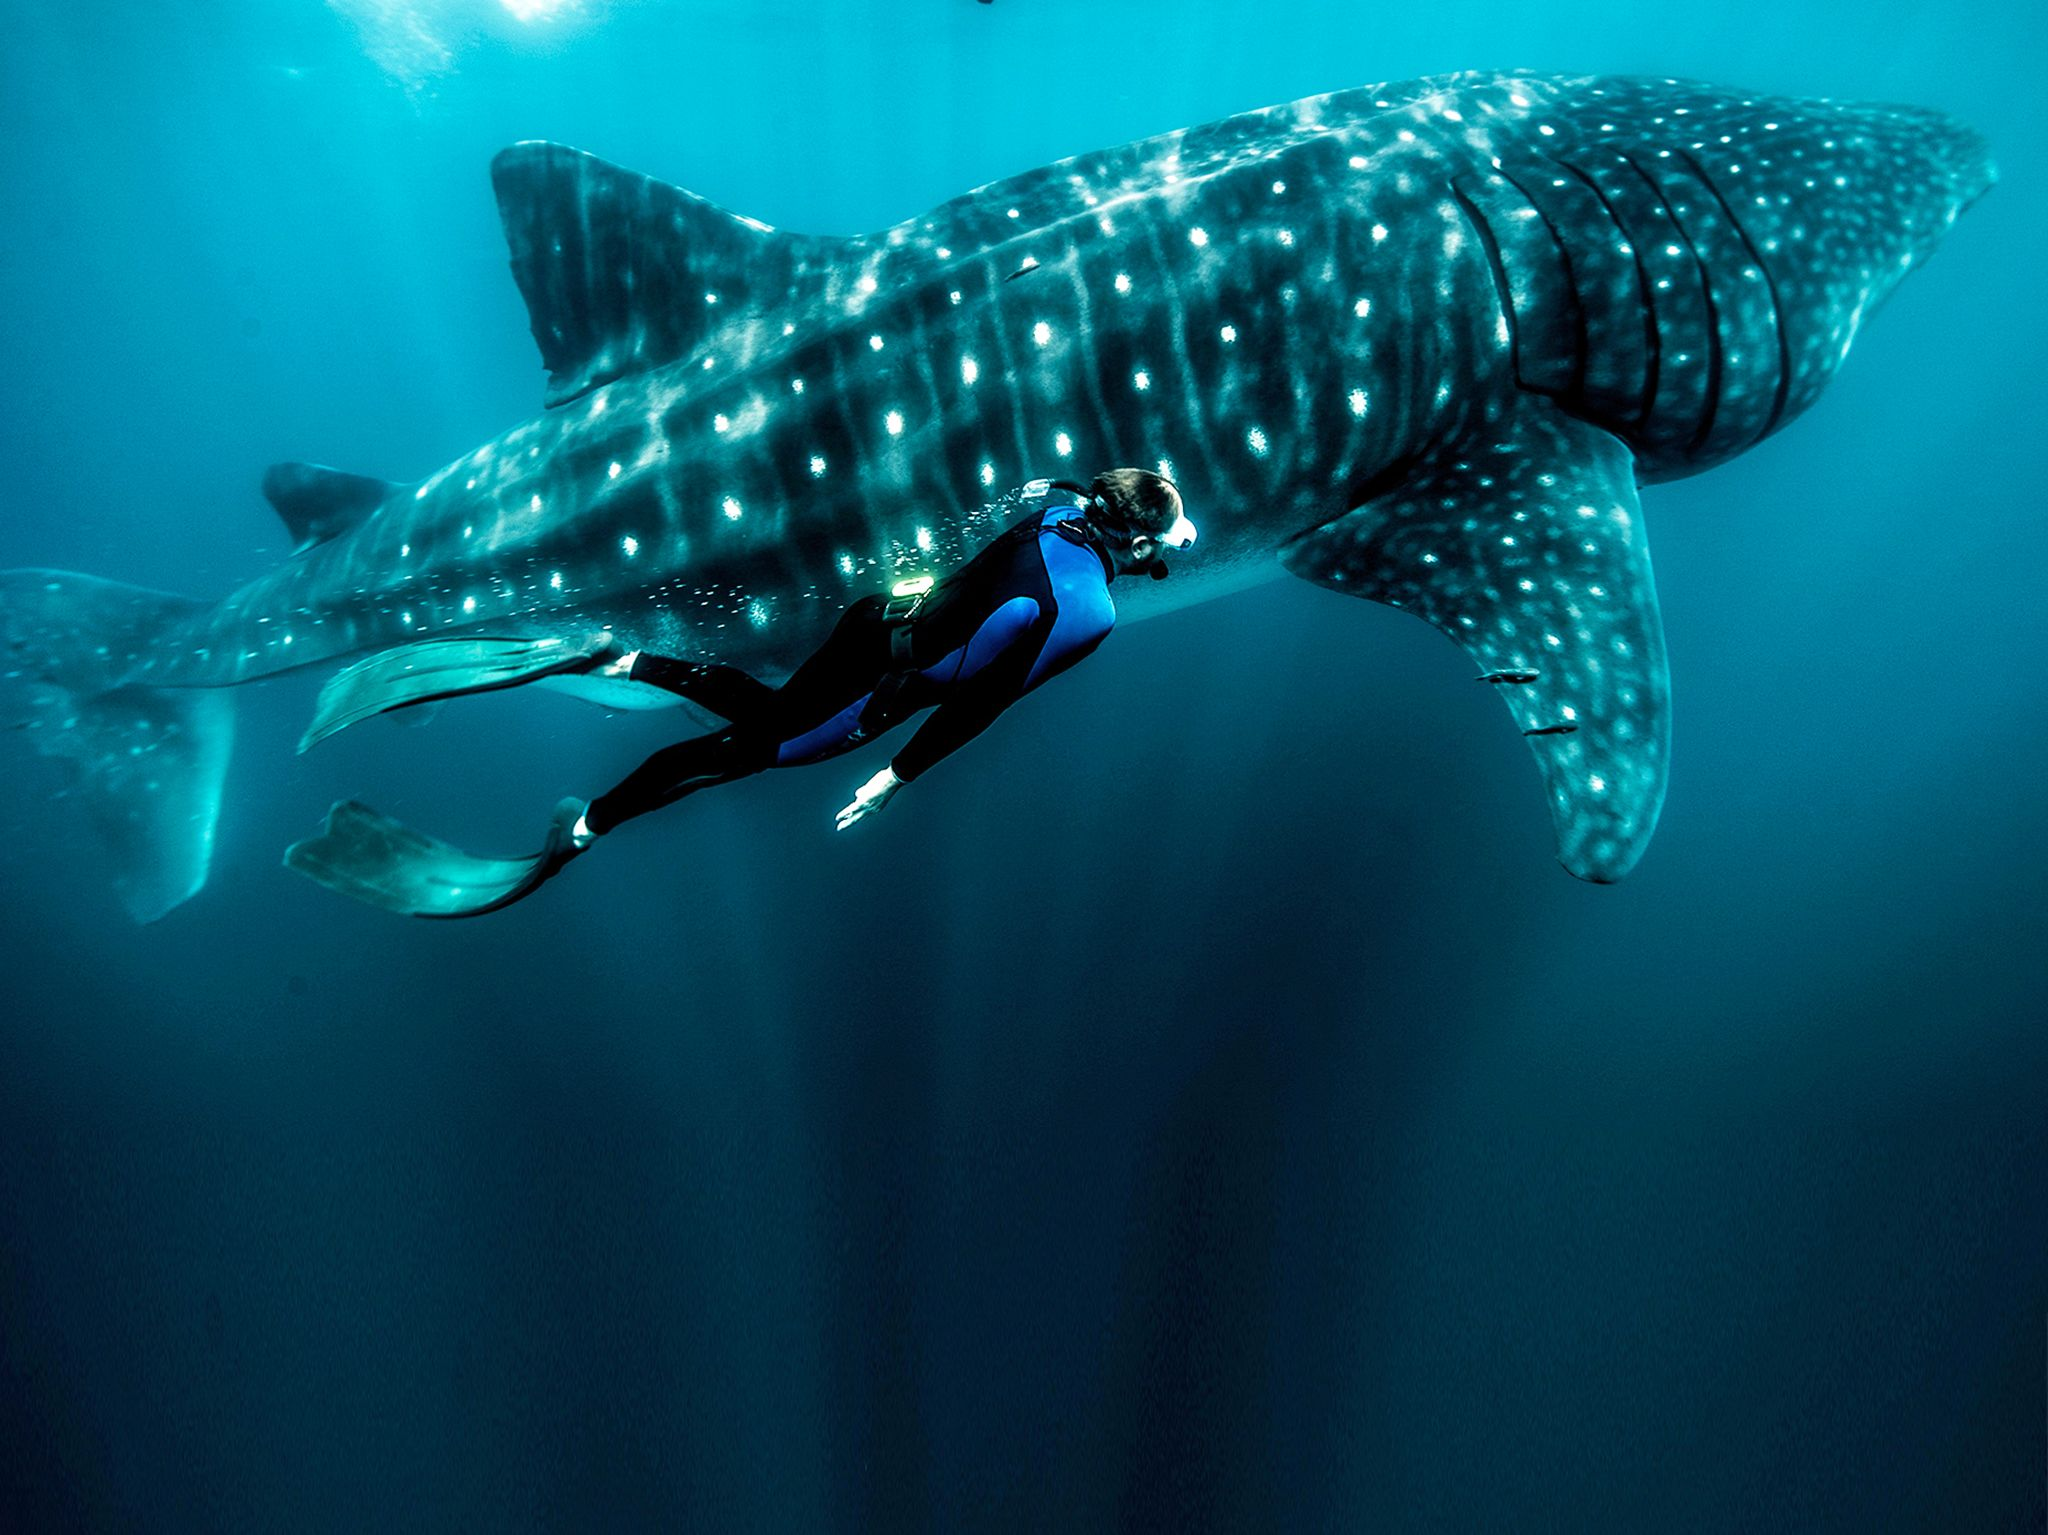 Sea Of Cortez, Mexico:  Zeb Hogan free dives alongside an enormous 30ft Whale shark. This image... [Photo of the day - November 2018]